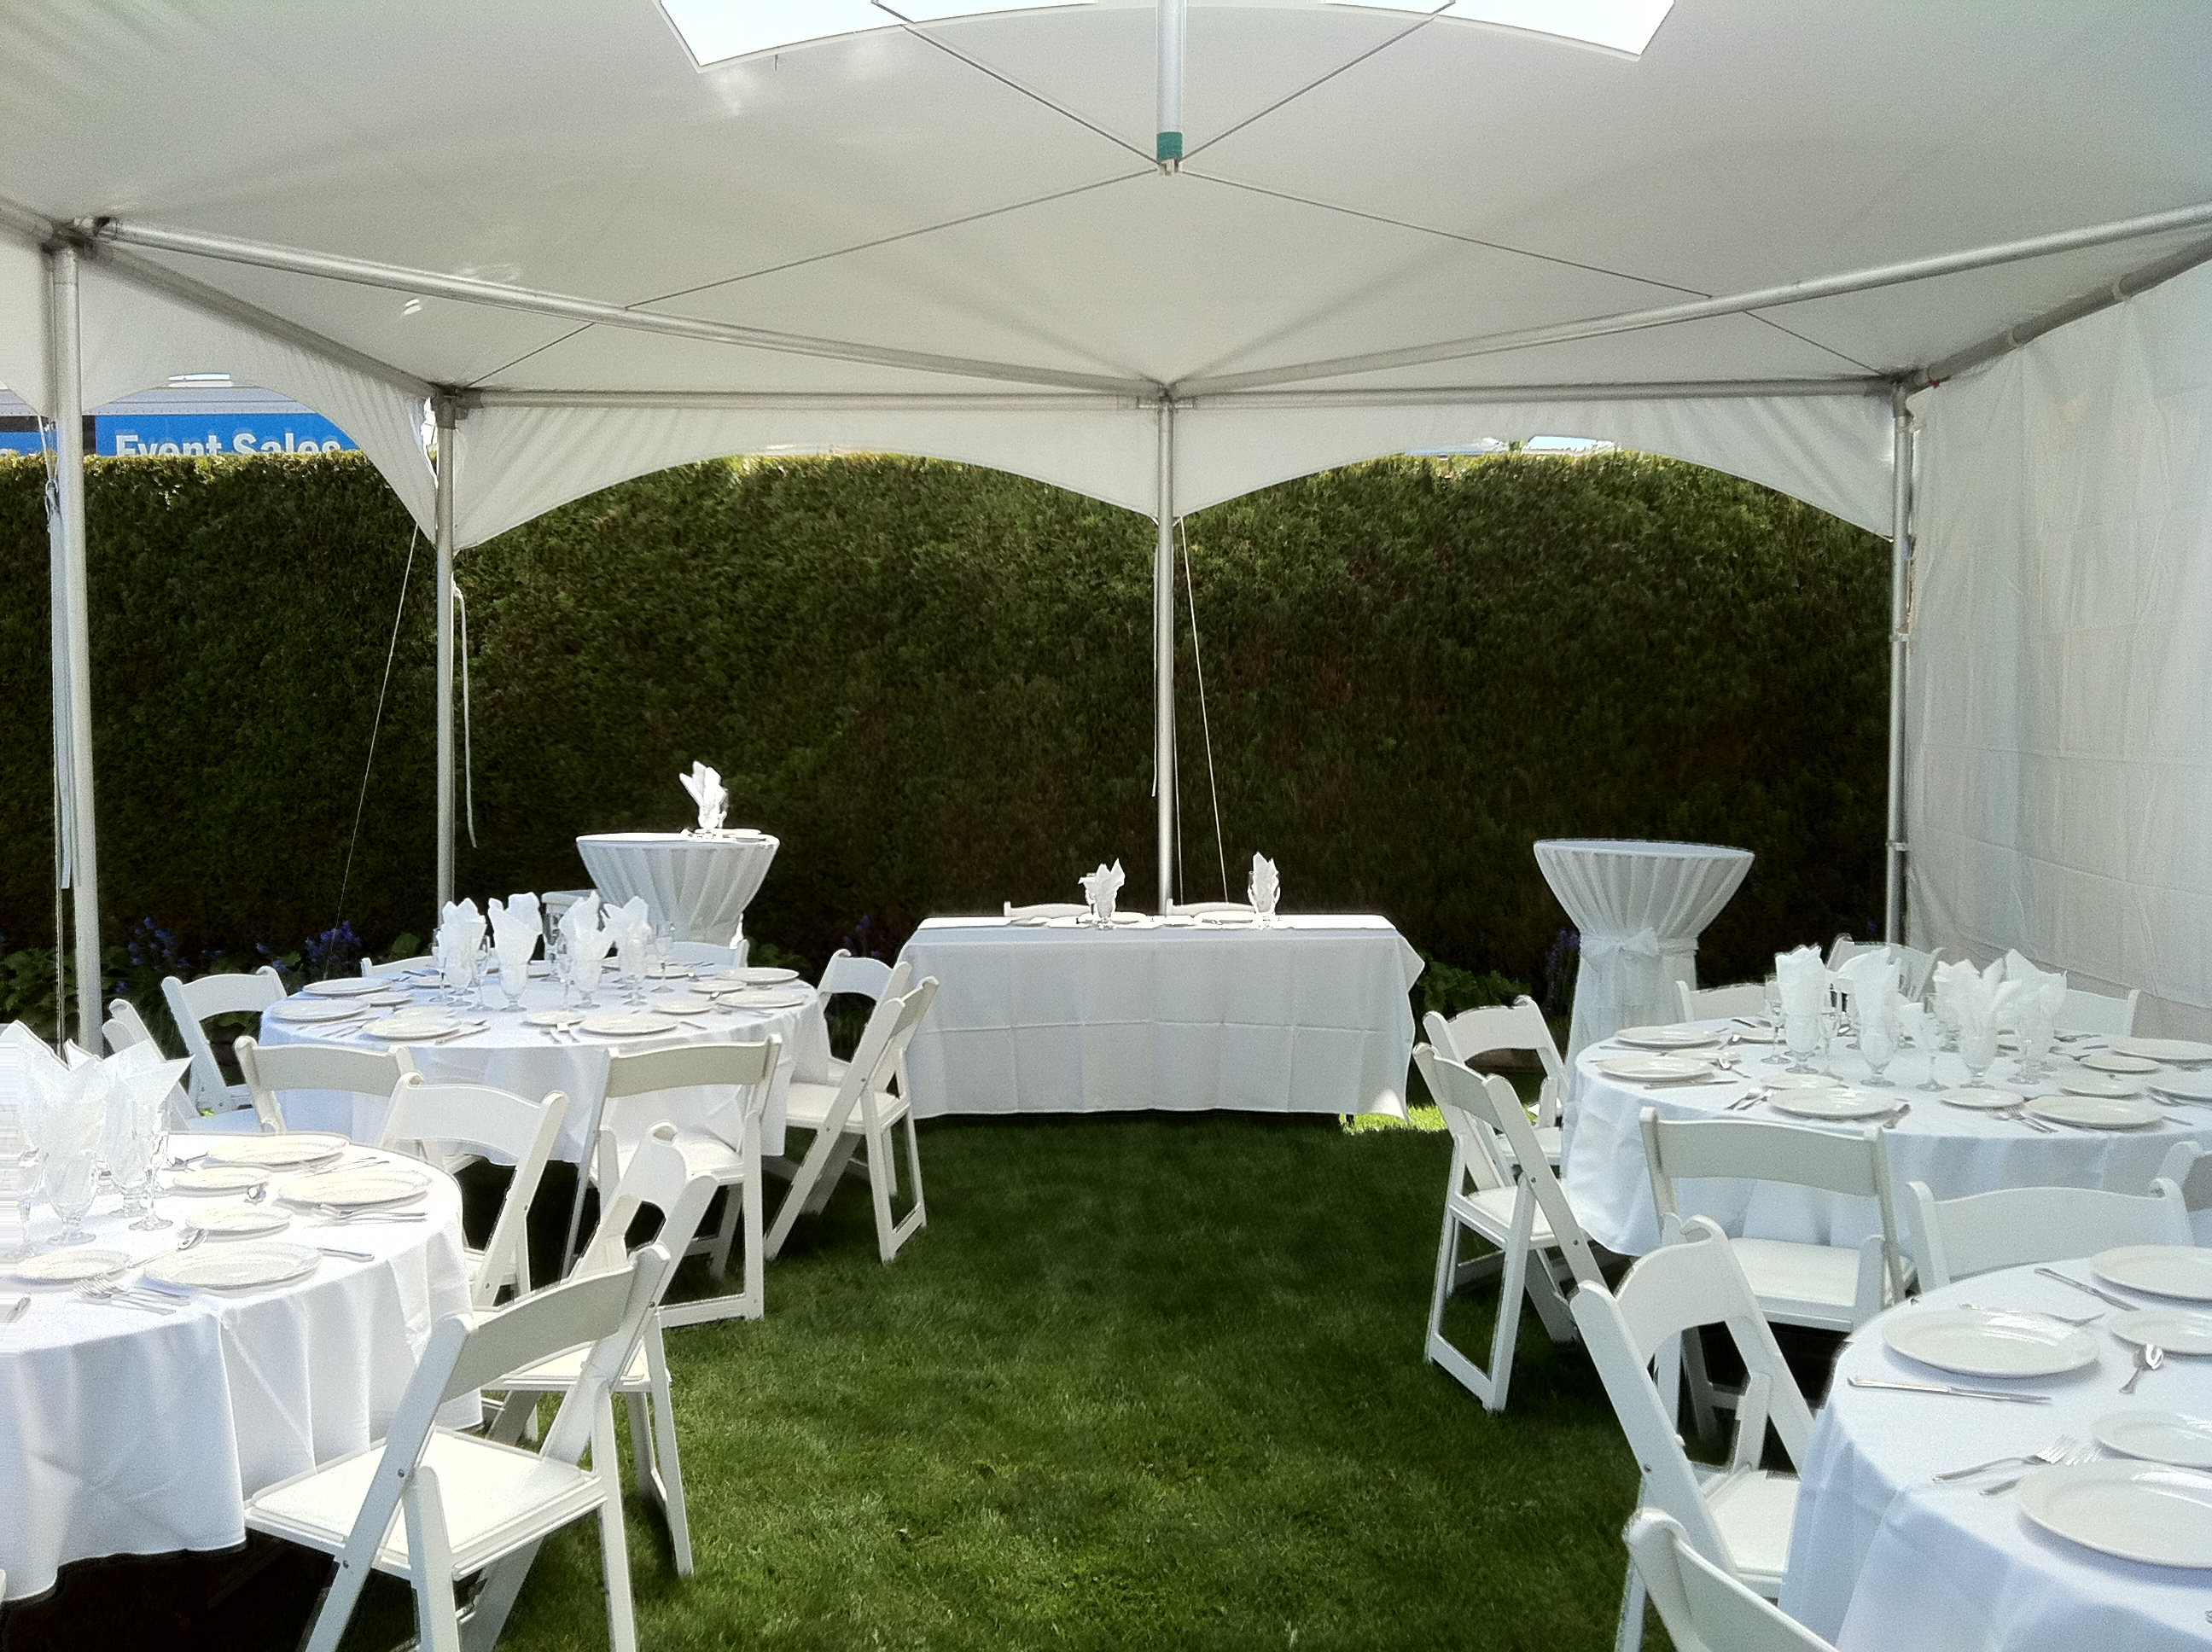 Small Private Backyard Event May 2012